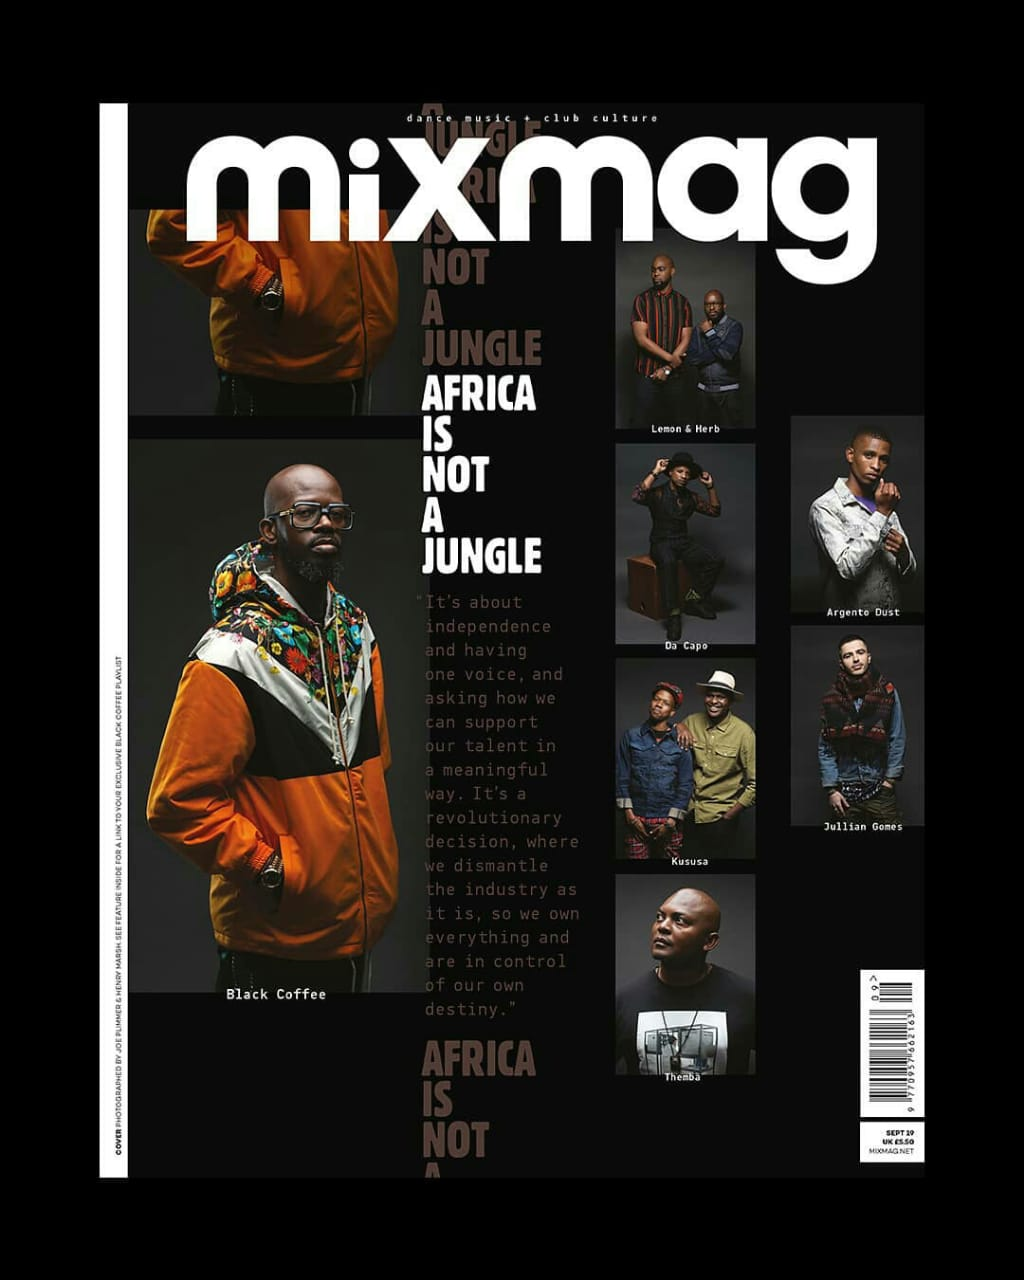 A Look at Kususa and Argento Dust in MixMag, Curated by Black Coffee